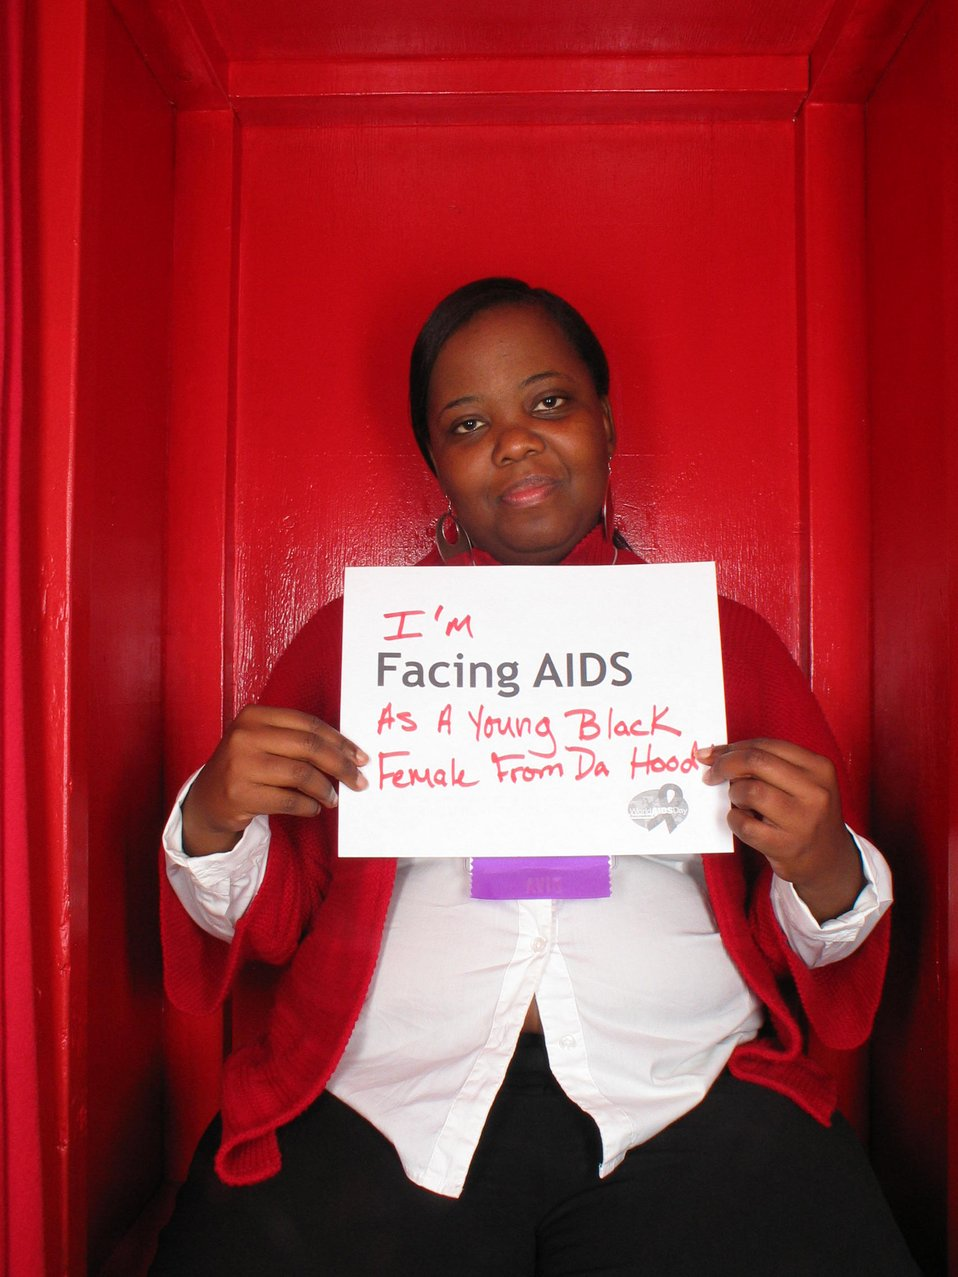 I'm Facing AIDS as a young black female from da hood.